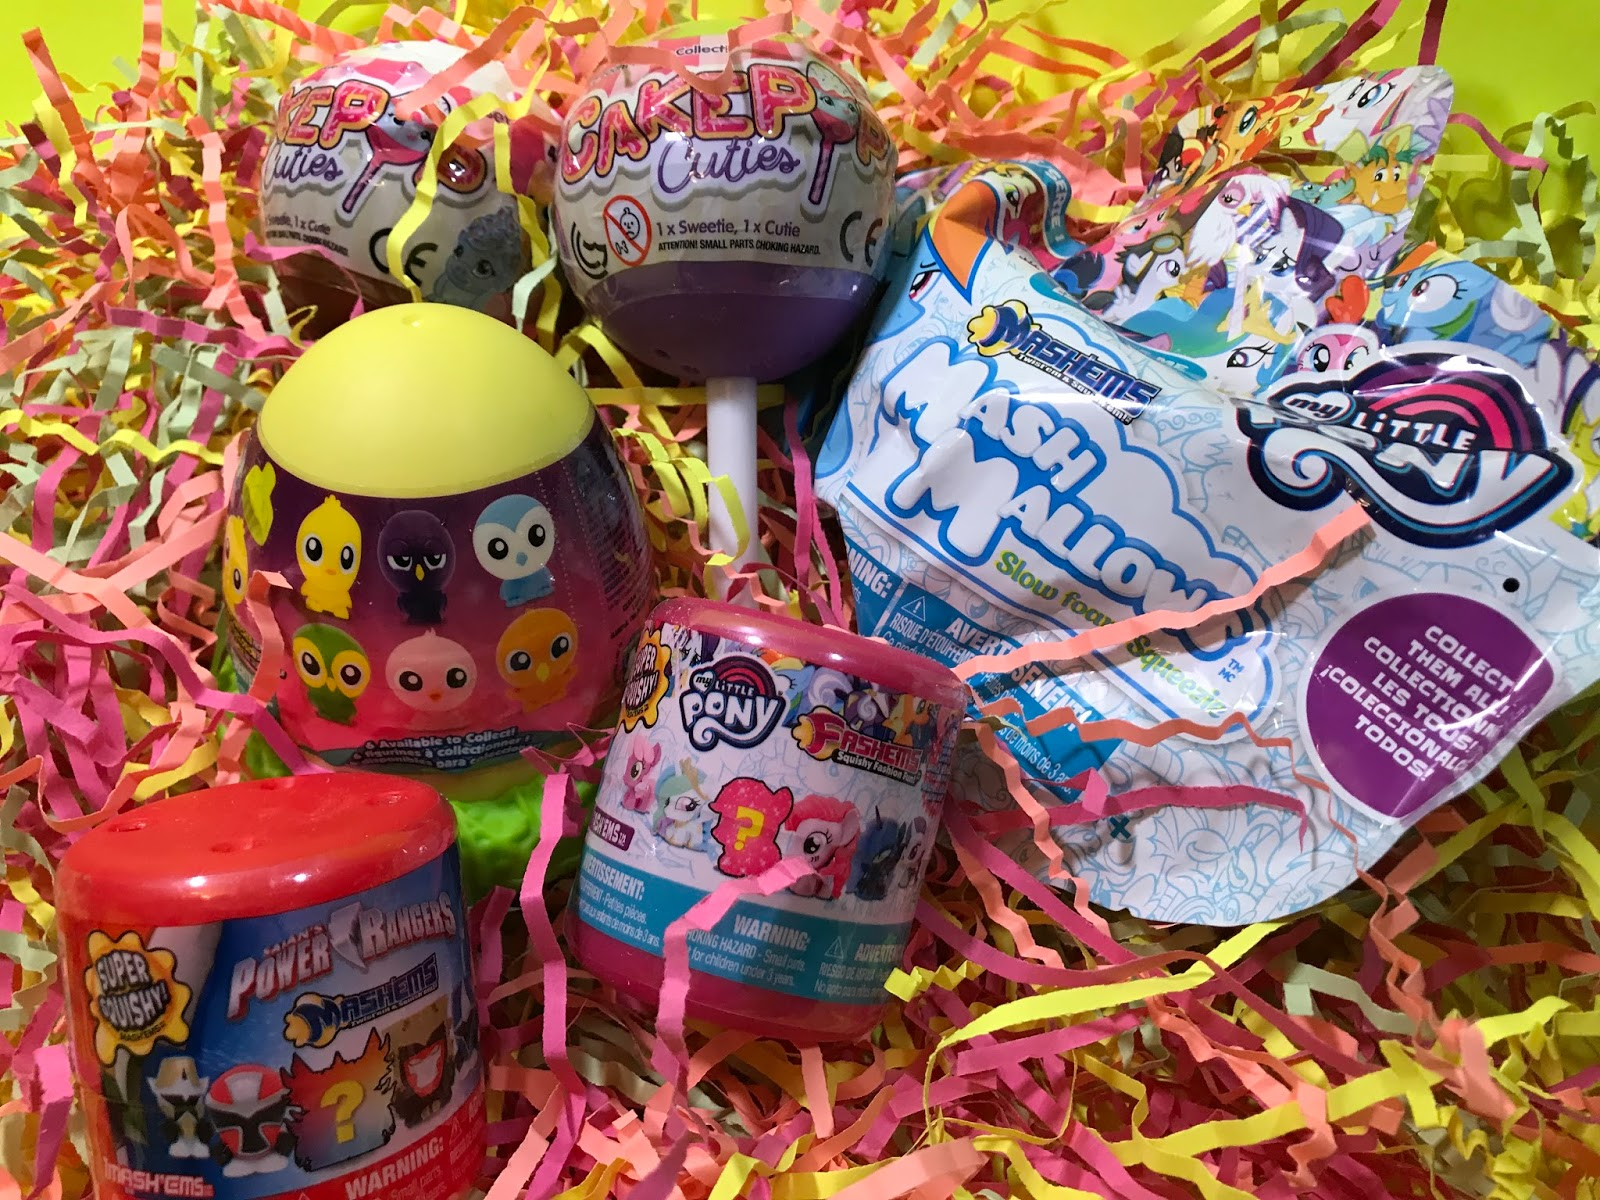 Tubey toys 15 easter basket gift ideas for your kid collectors 15 easter basket gift ideas for your kid collectors affordable easter basket fillers for your children negle Images